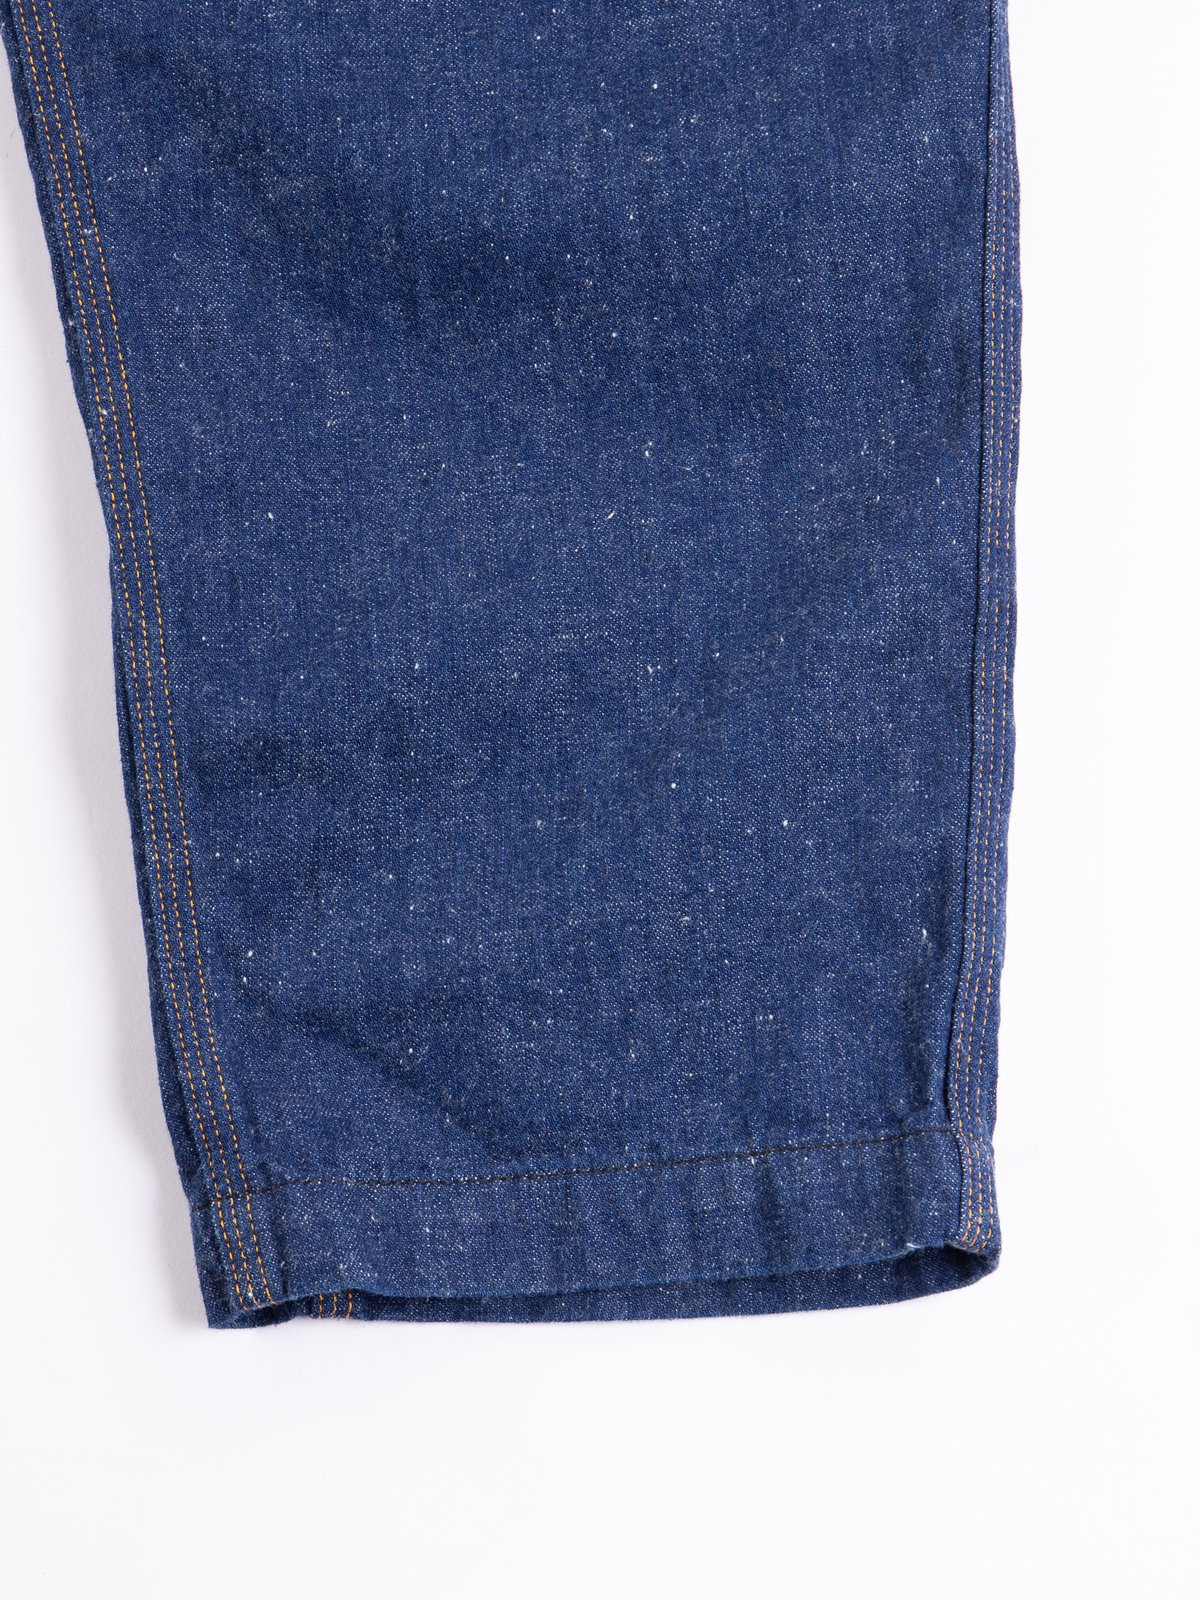 One Wash Denim TBB Climbing Pant - Image 5